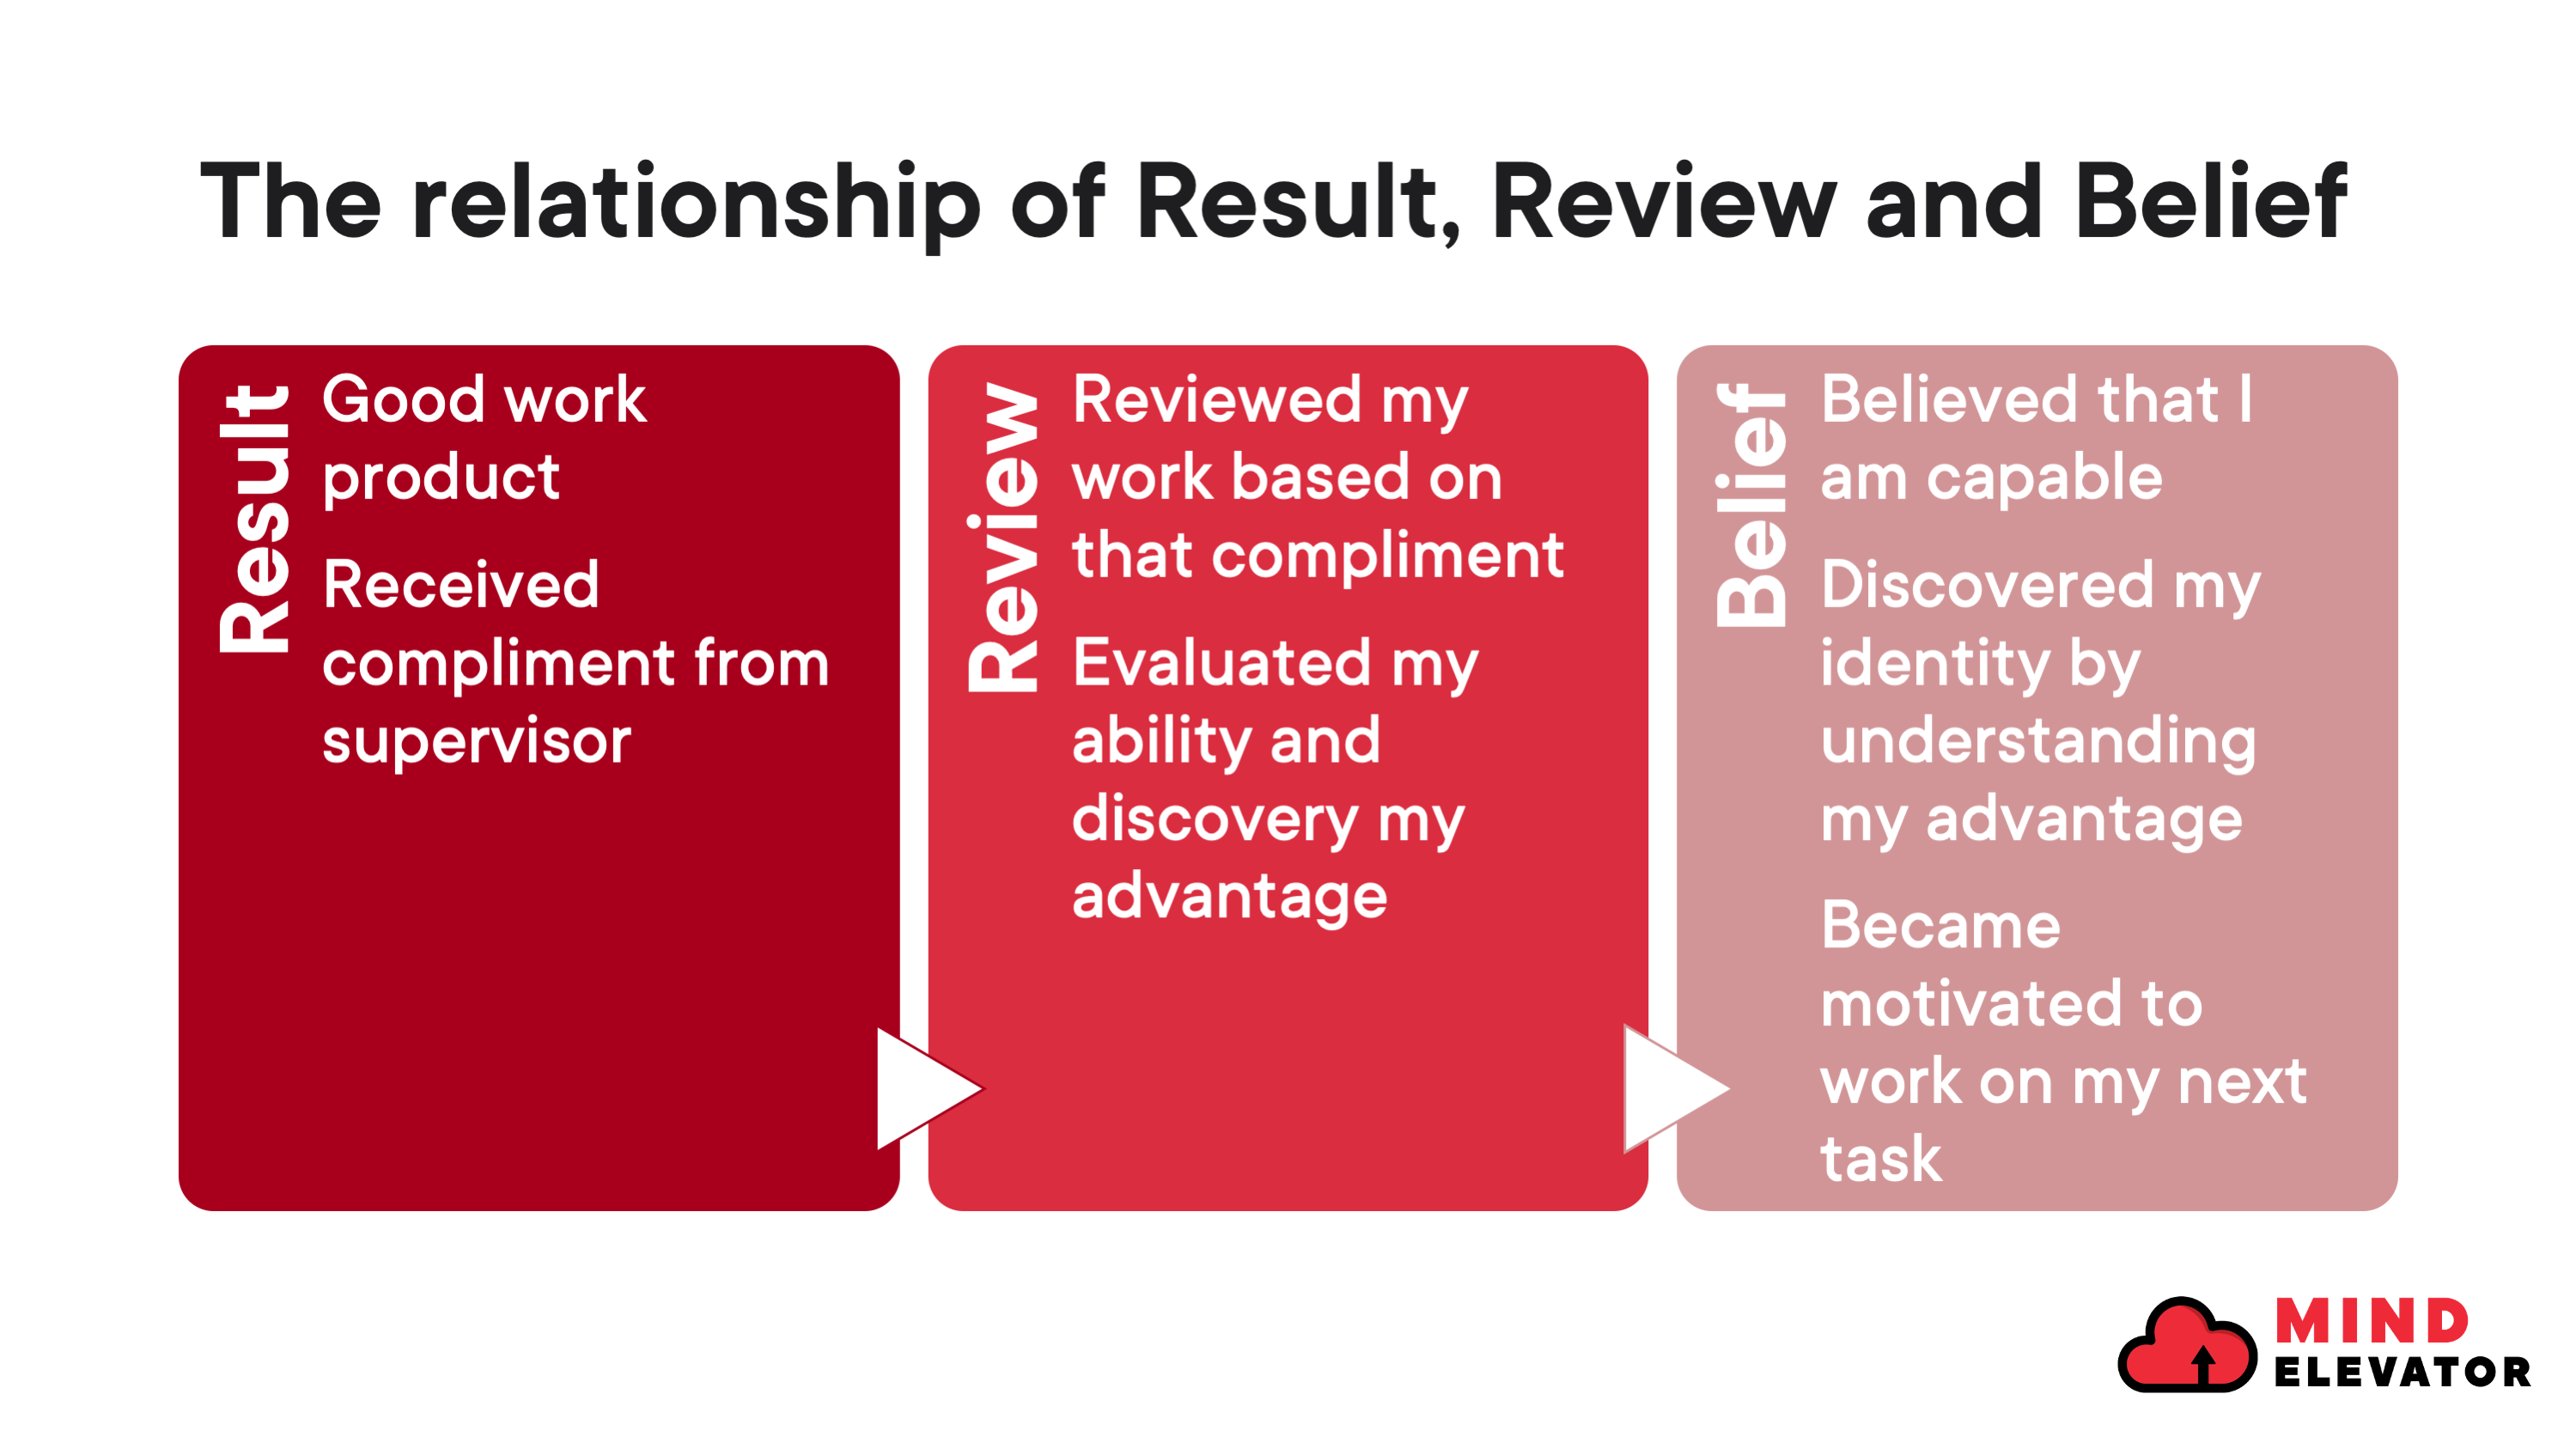 Result and review will have an impact on your belief, identity and values.